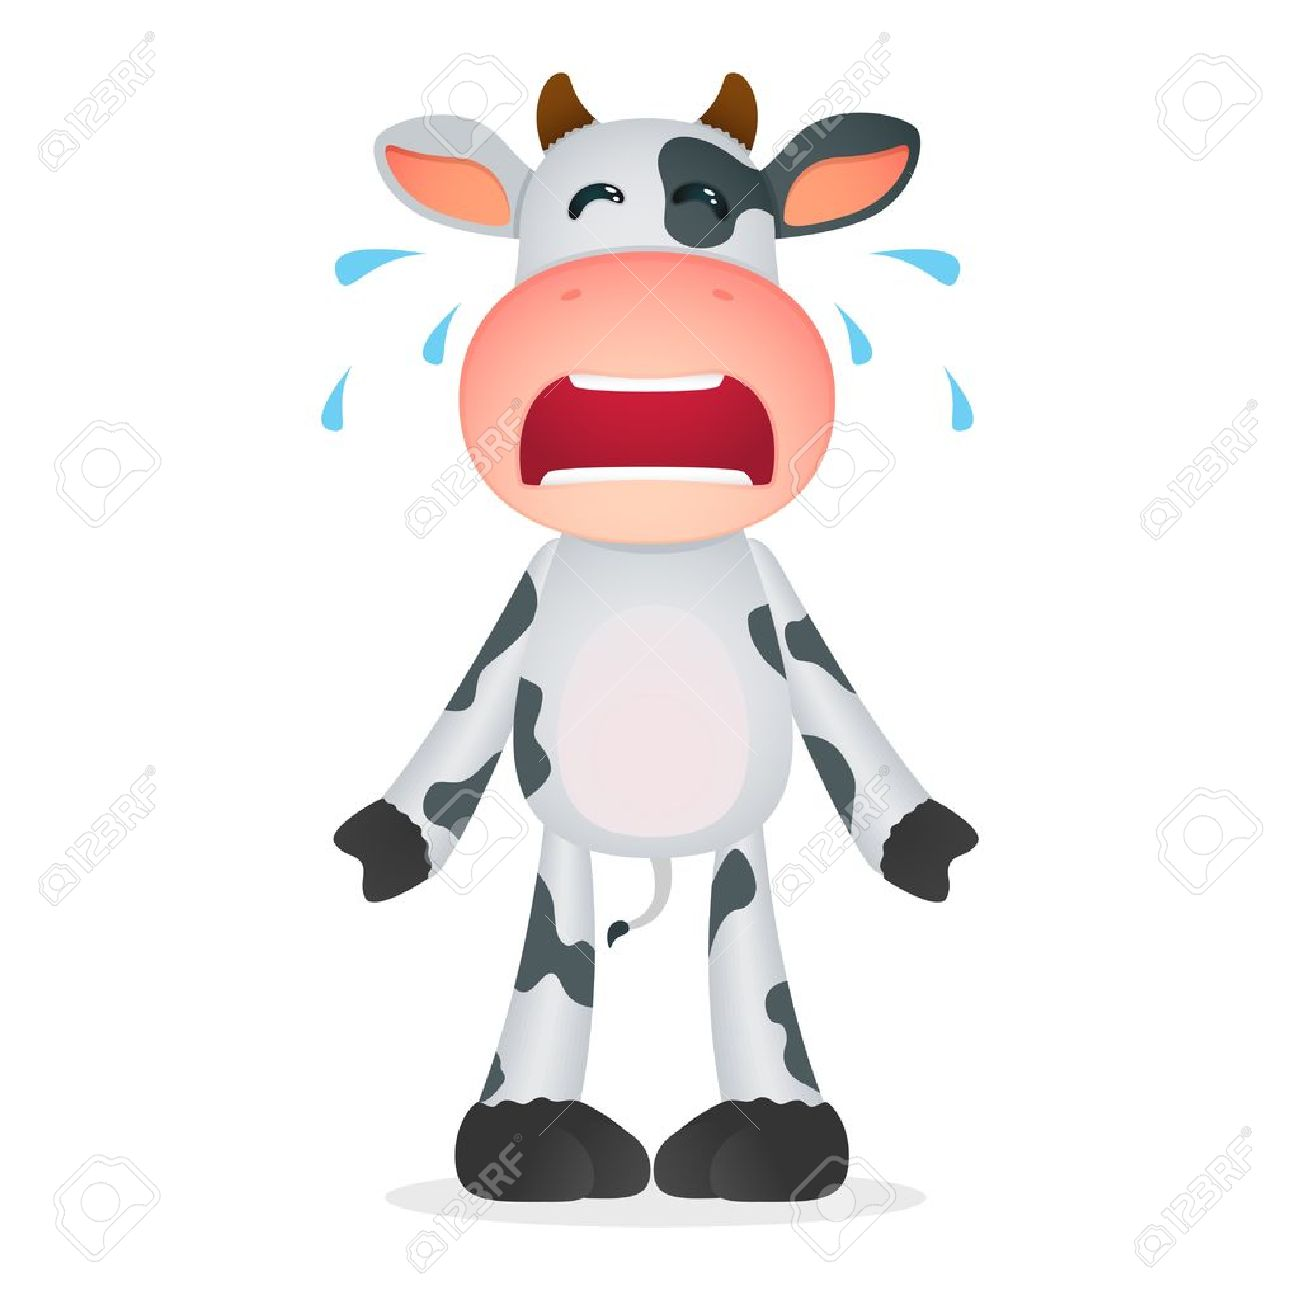 funny cartoon cow royalty free cliparts vectors and stock